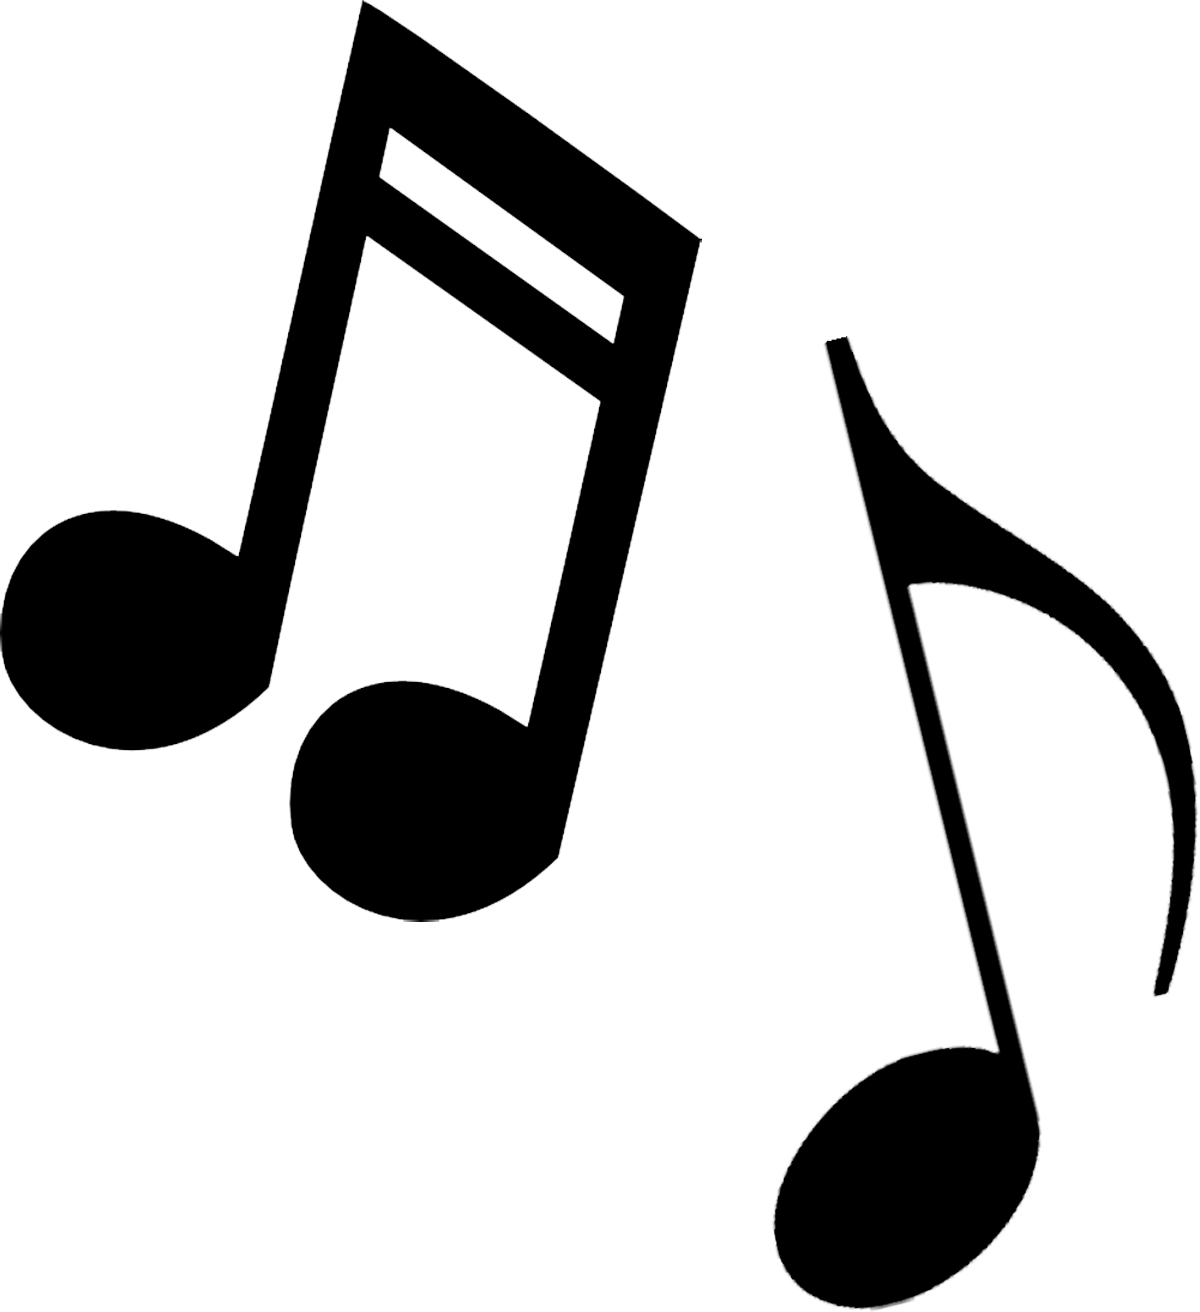 Musical clip art music notes .-Musical clip art music notes .-5